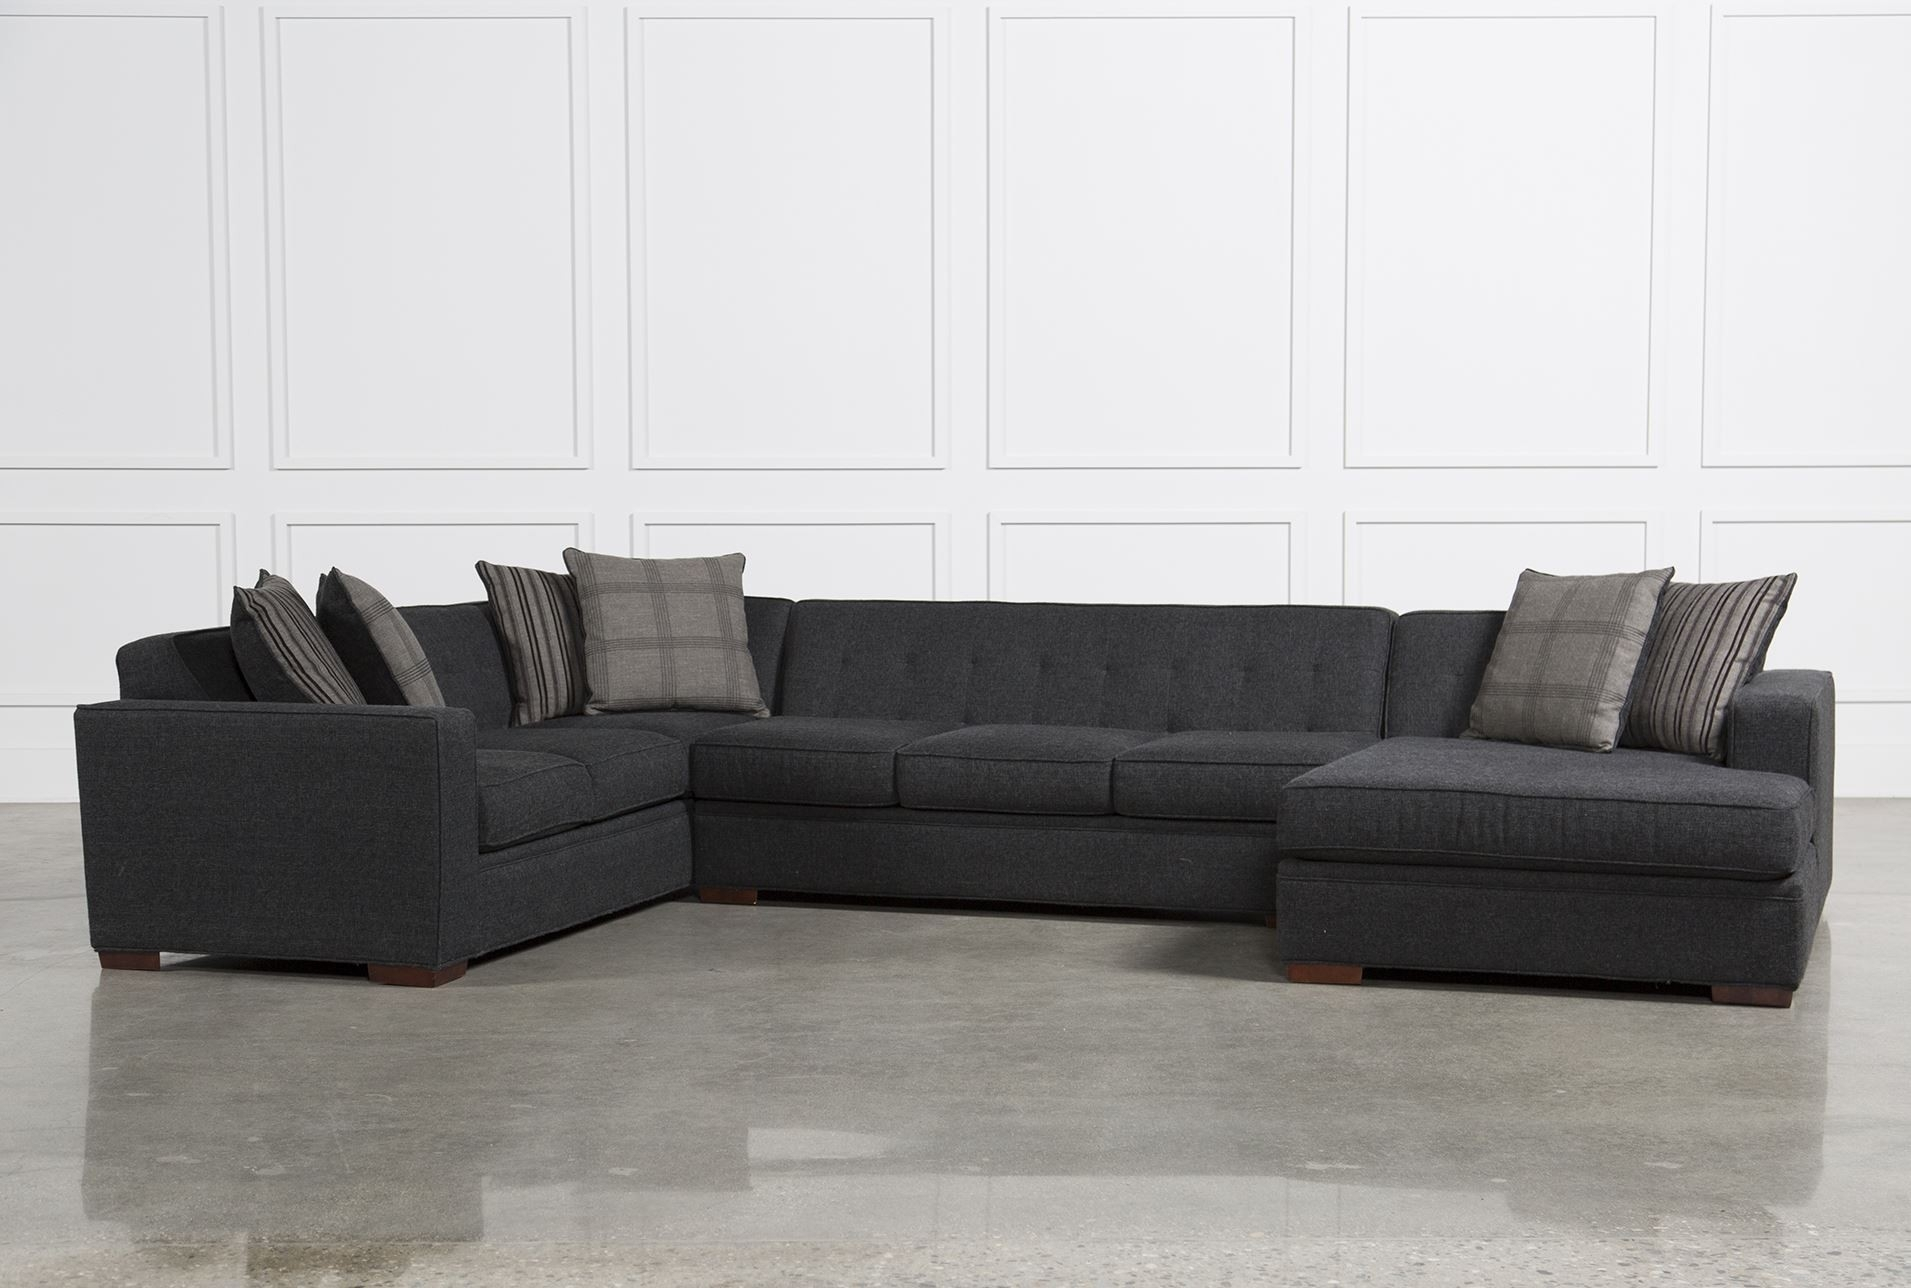 Living Spaces Sectional Sofas Delano 2 Piece W Laf Oversized Chaise Inside Delano 2 Piece Sectionals With Laf Oversized Chaise (Image 19 of 25)